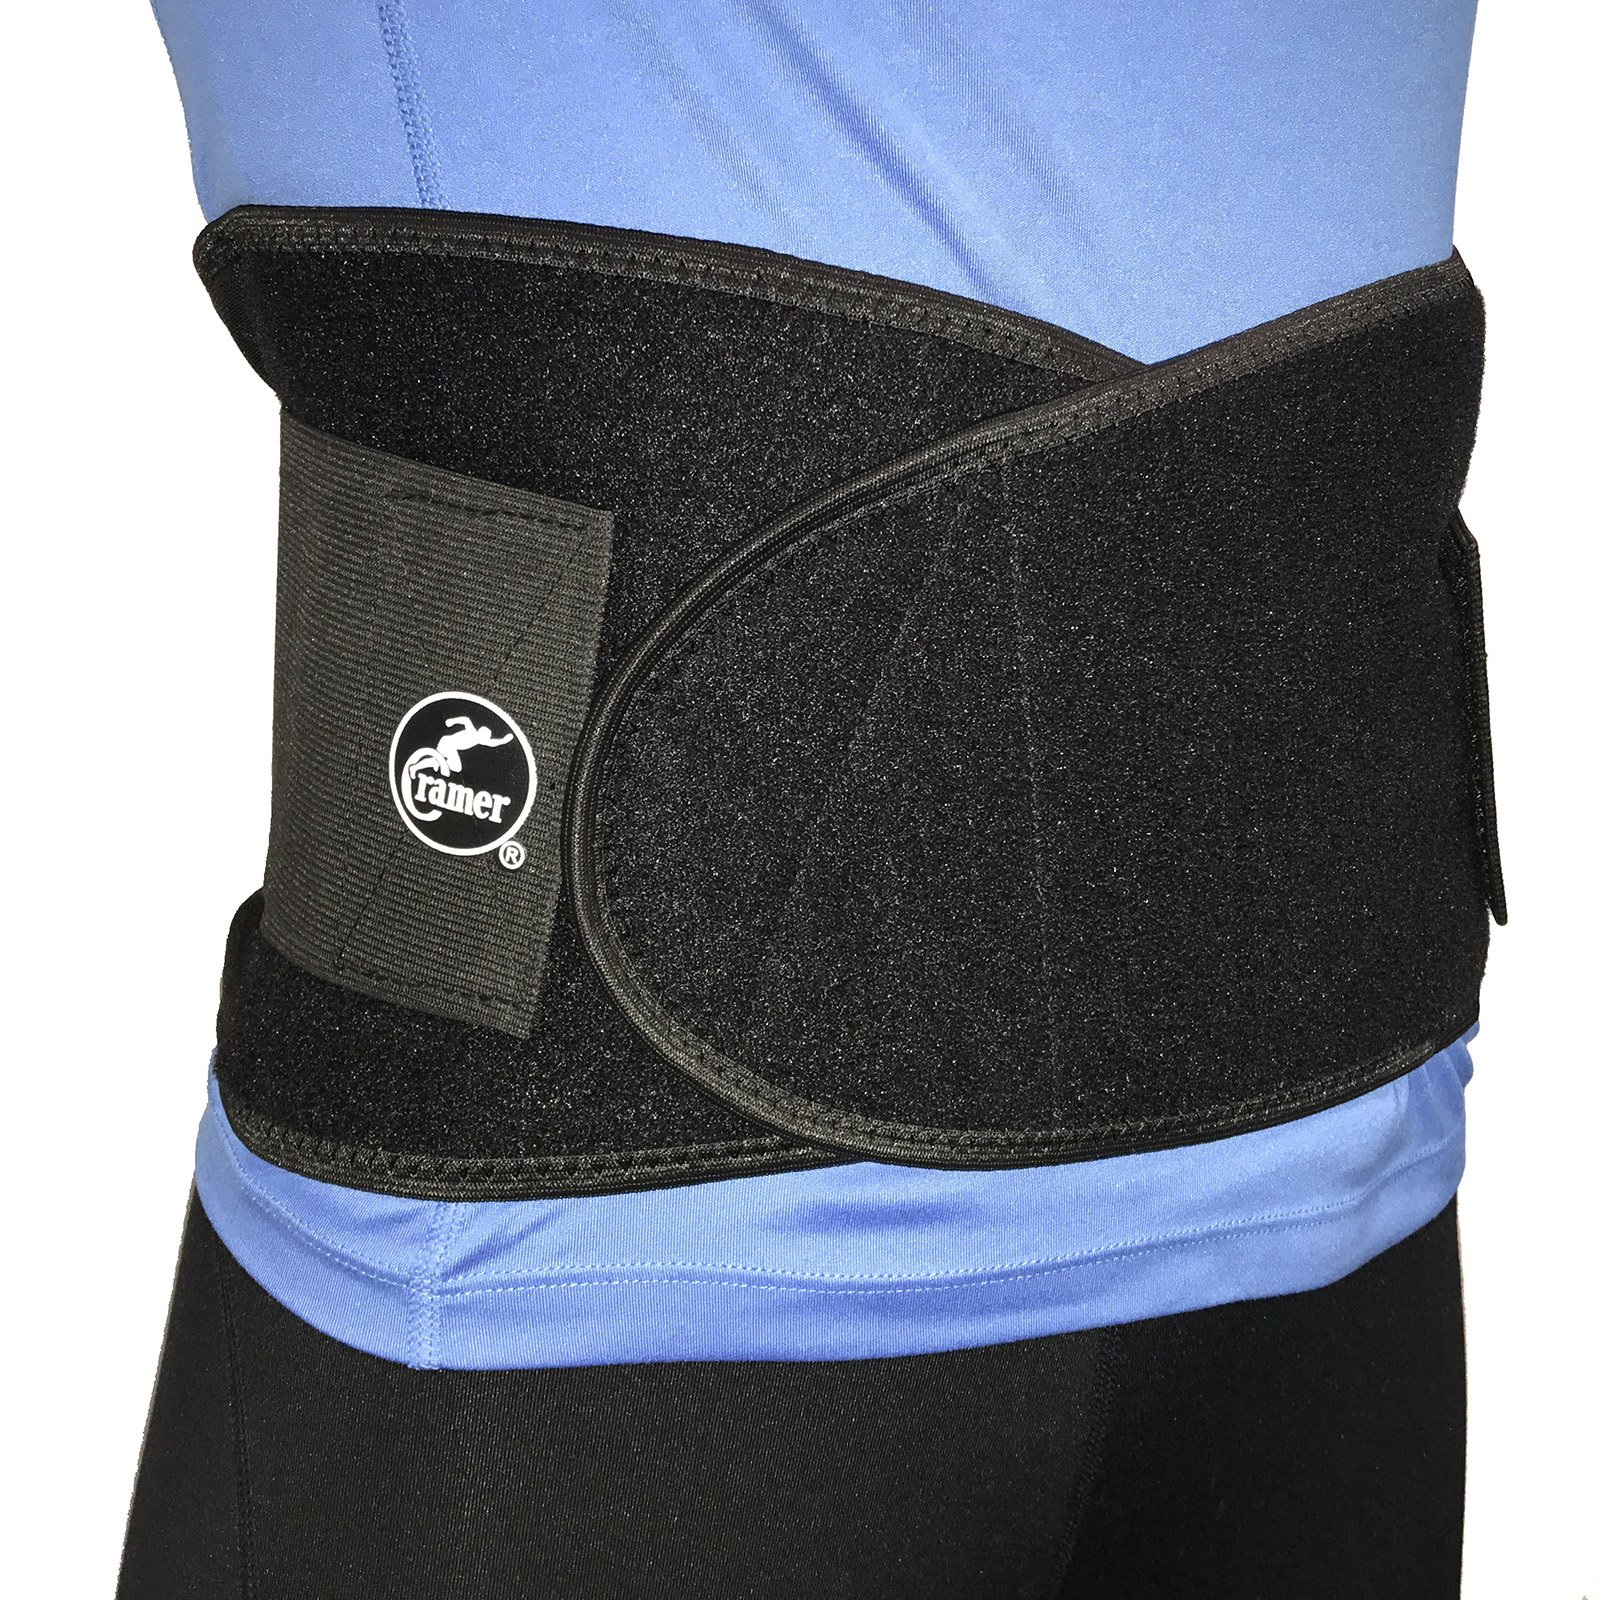 Cramer Double Strap Back Support Waist Belt For Abdominal and Lumbar Regions, Lower Back Support Brace, Back Pain Relief, Back Compression, Promotes Good Posture, Supports Spine Stability